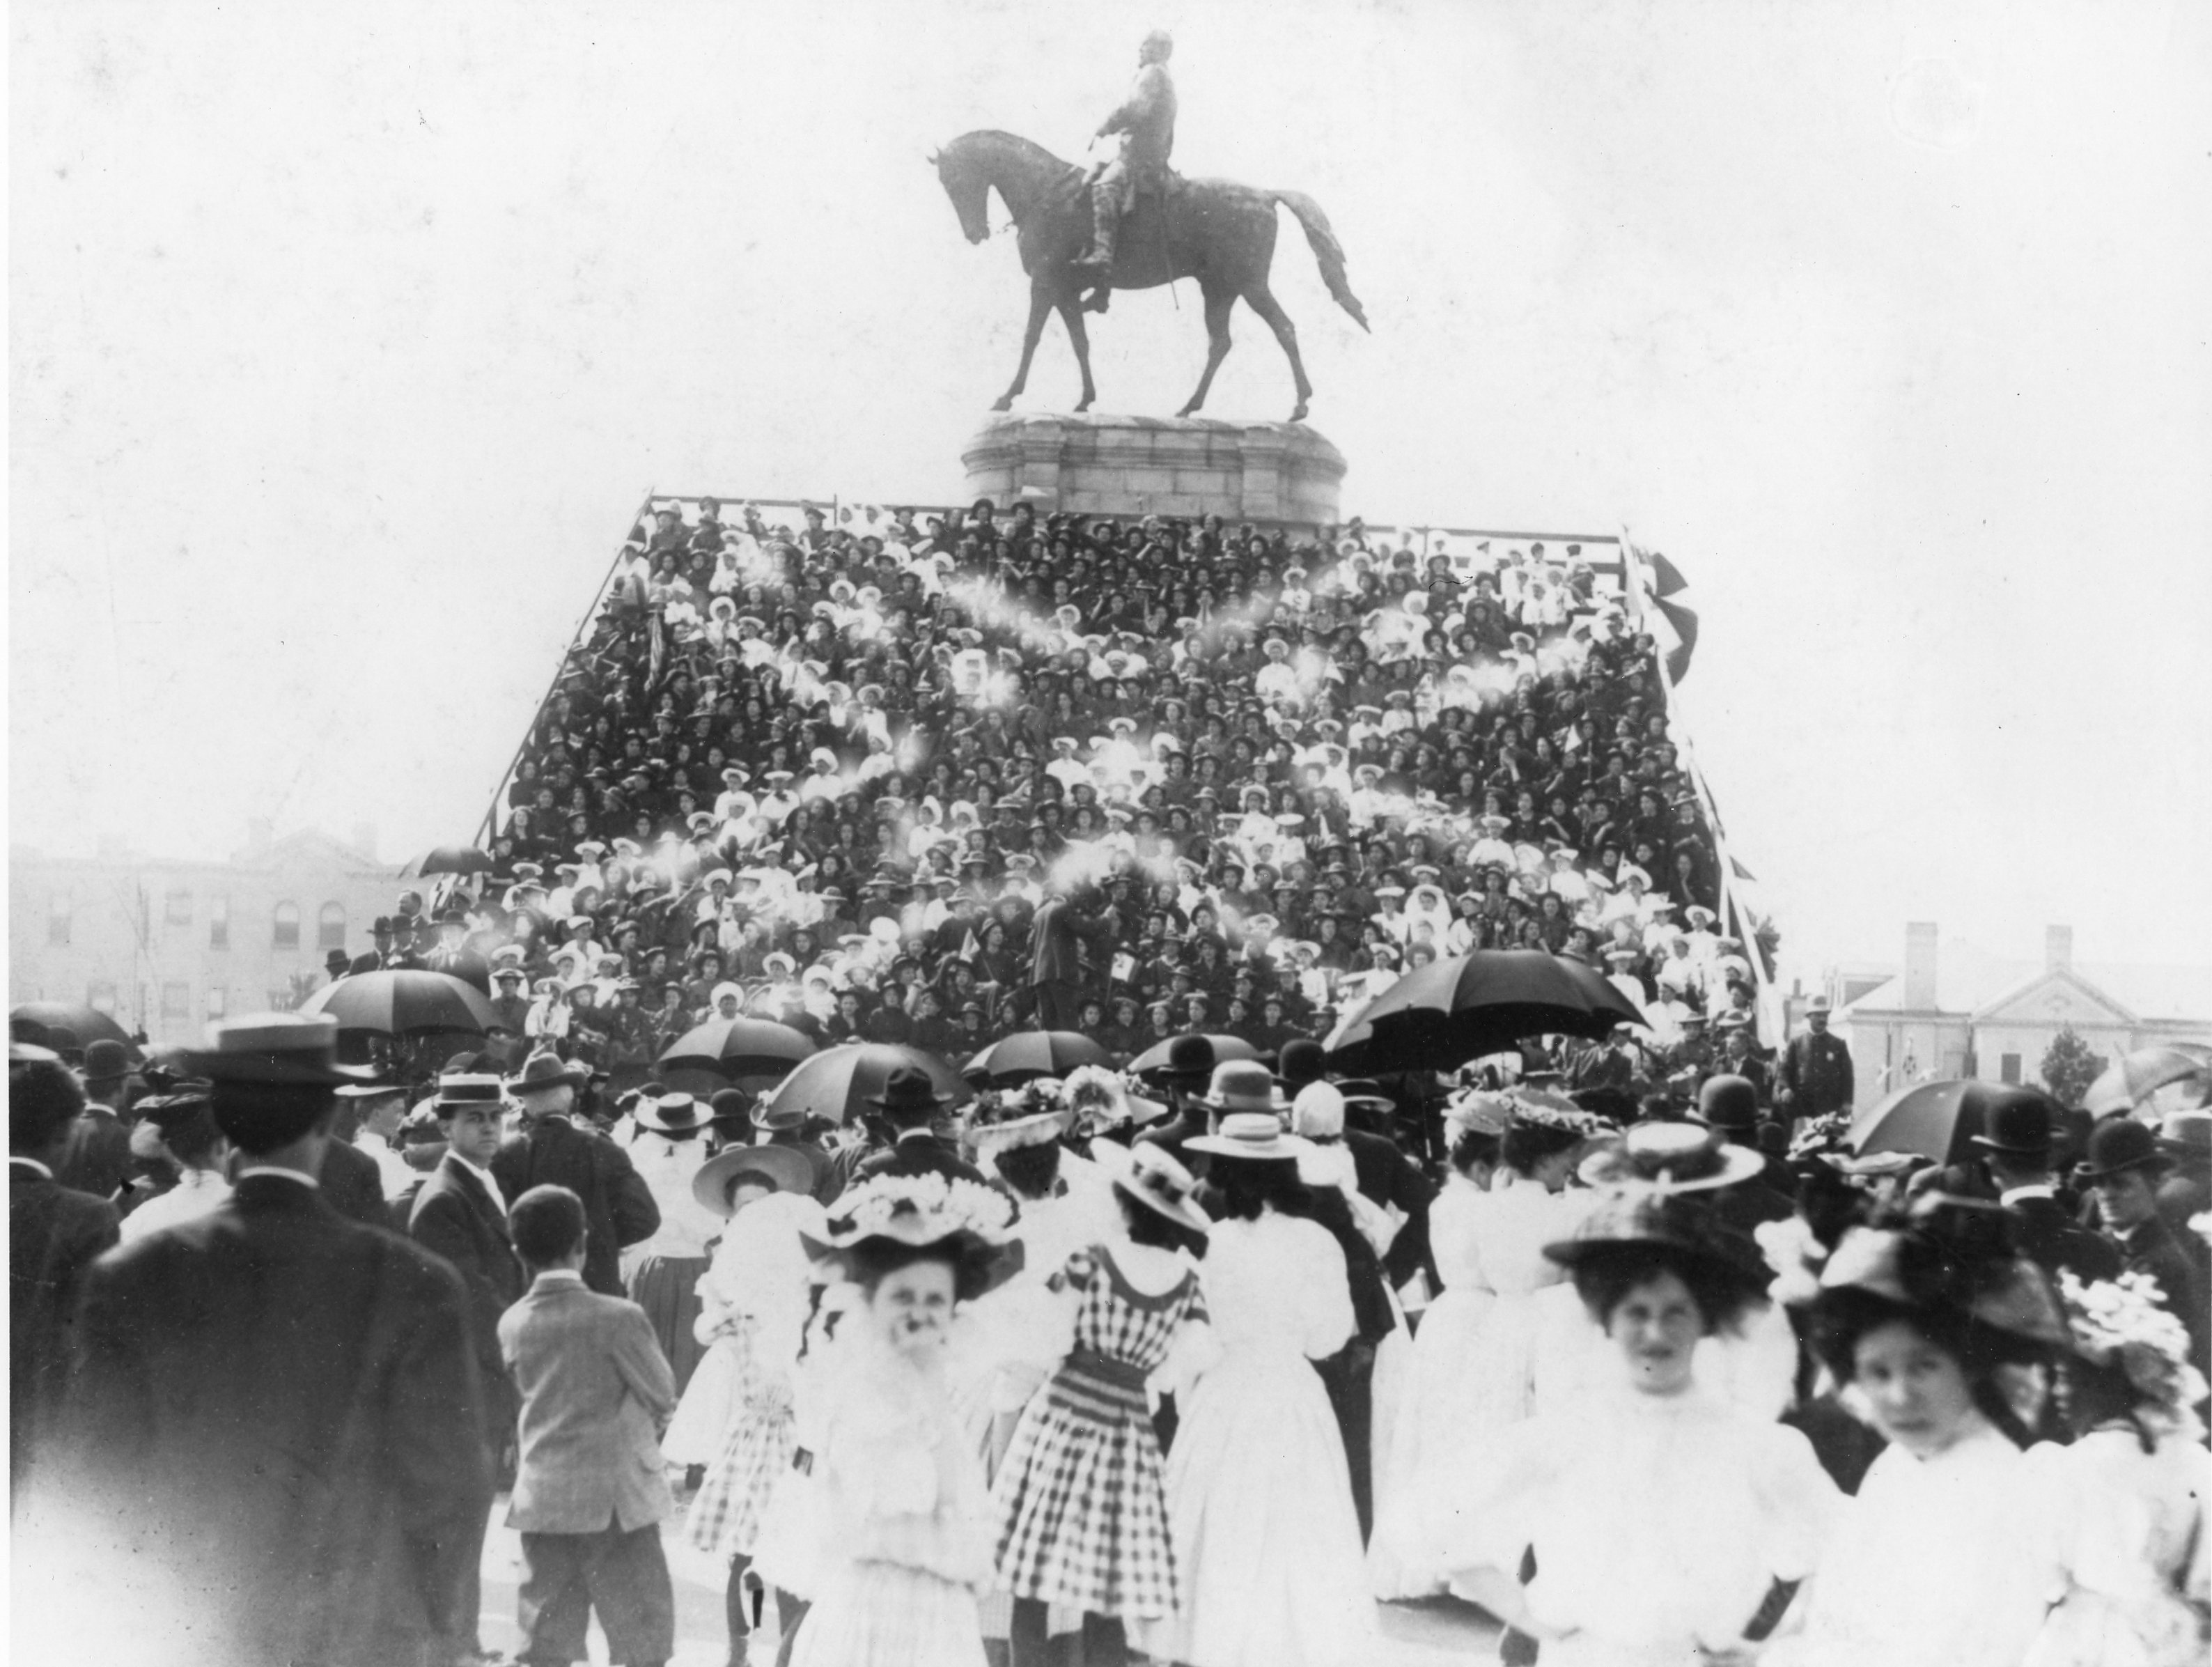 The Lee Monument, decorated with a human Confederate battle flag during the unveiling of the J.E.B. Stuart Monument